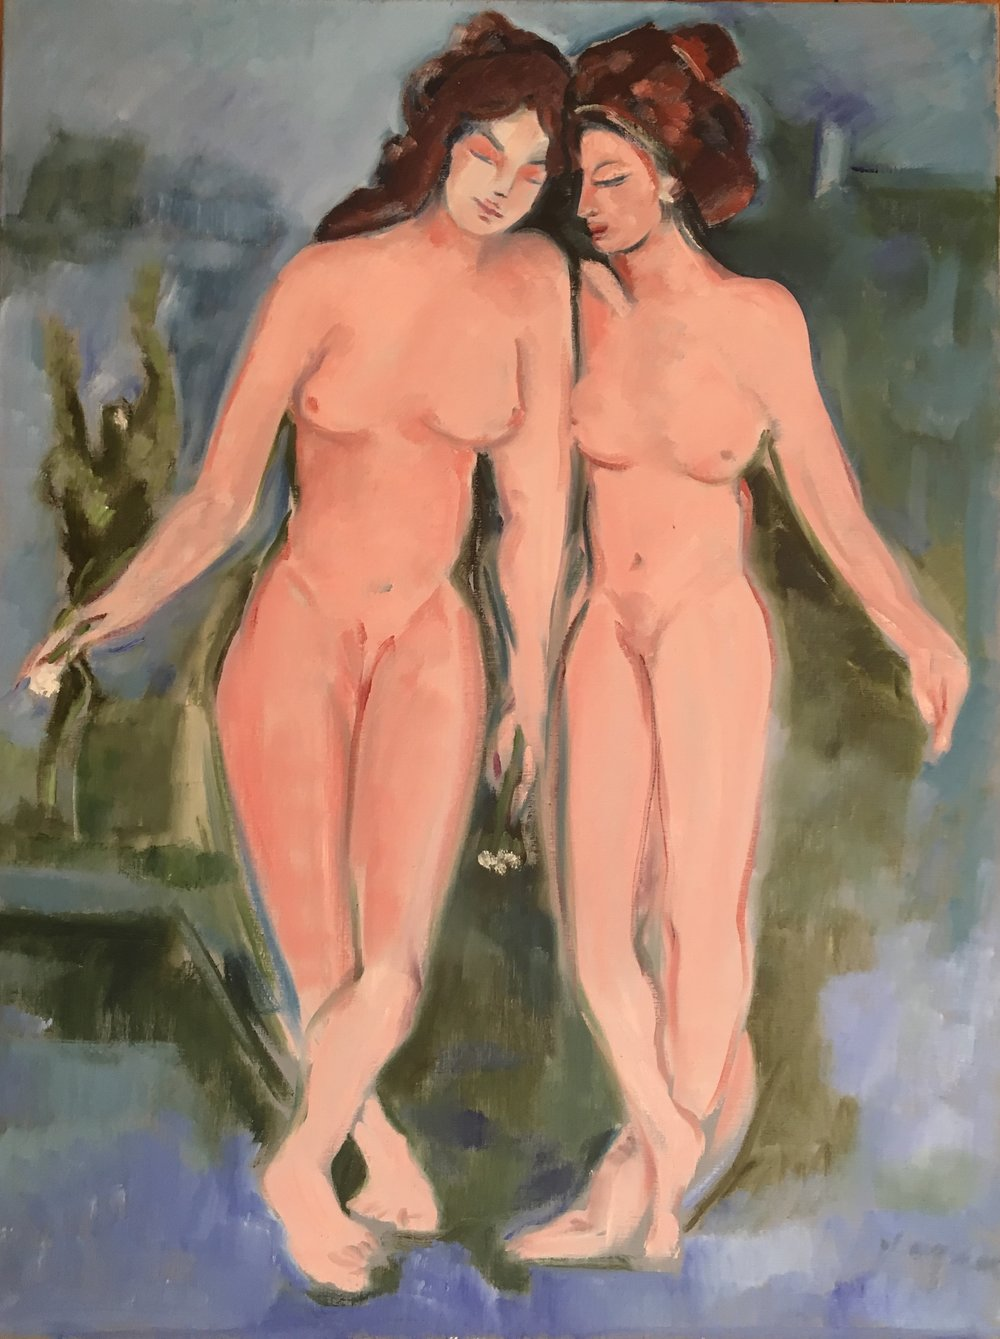 TwoDancingWomen.$4,000.JPG